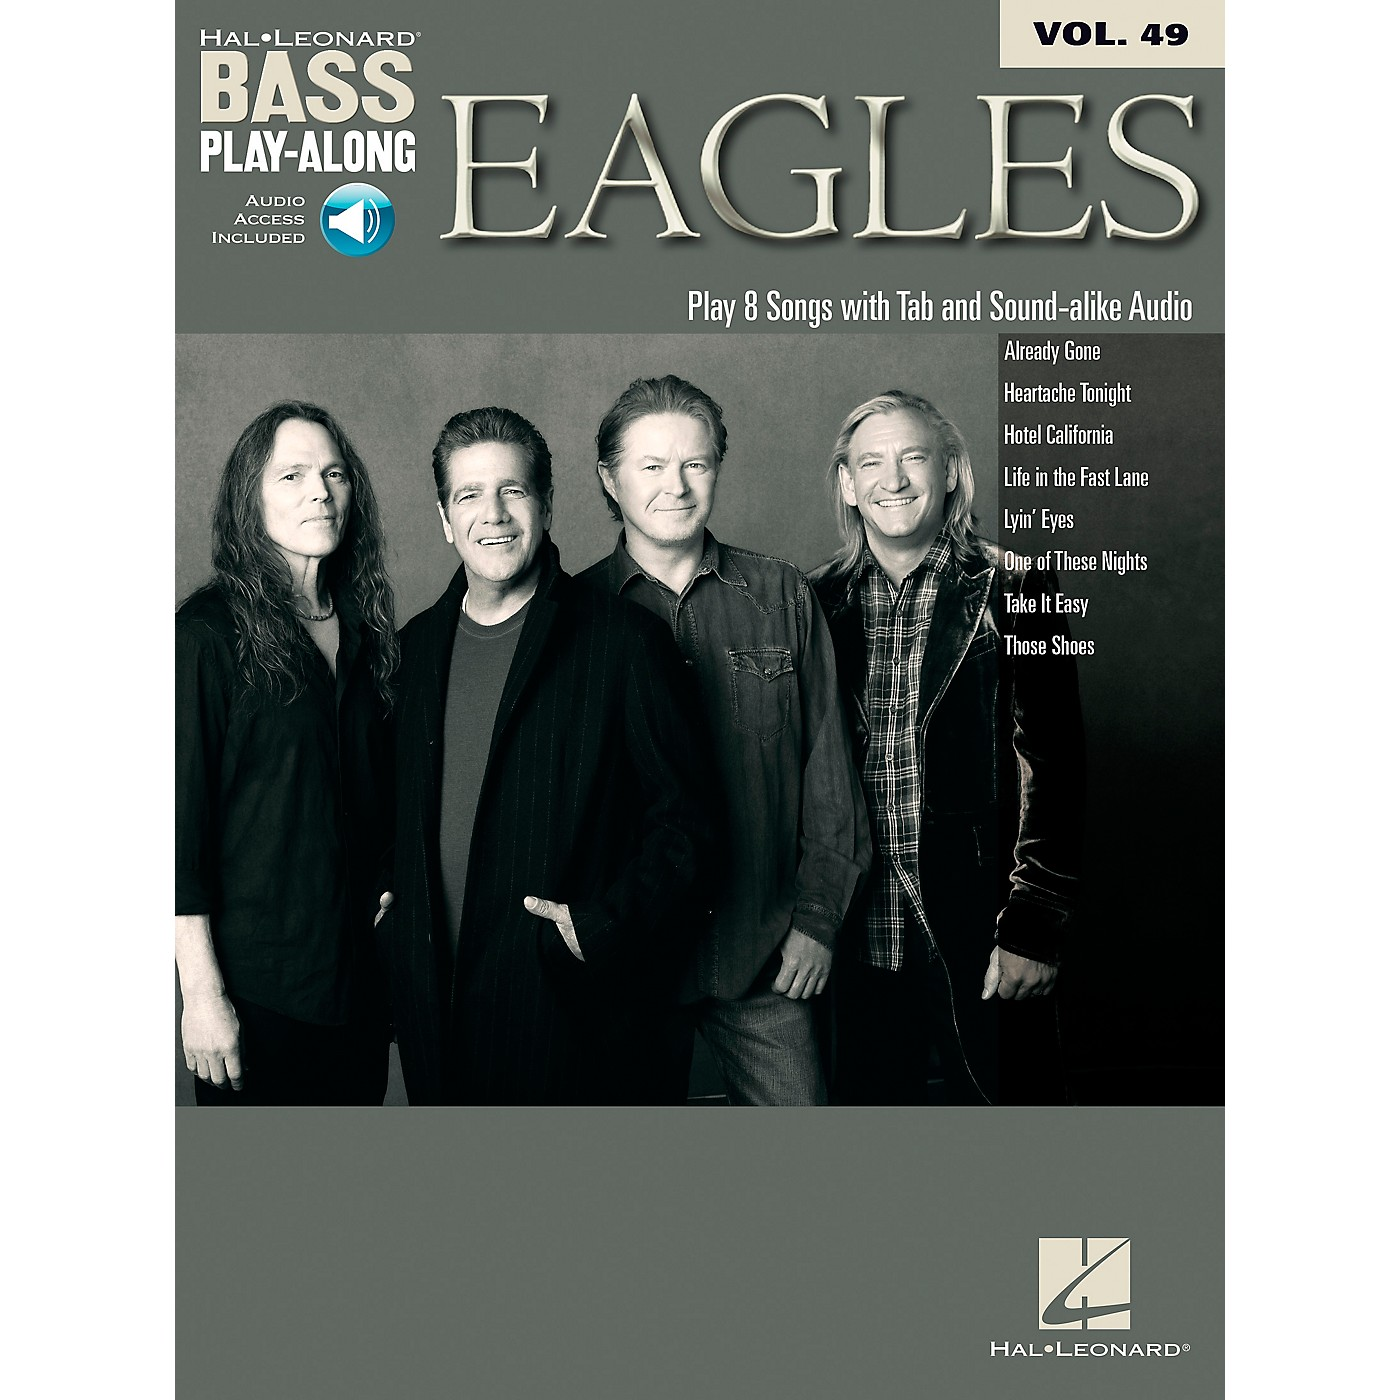 Hal Leonard Eagles - Bass Play-Along Vol. 49 Book/CD thumbnail